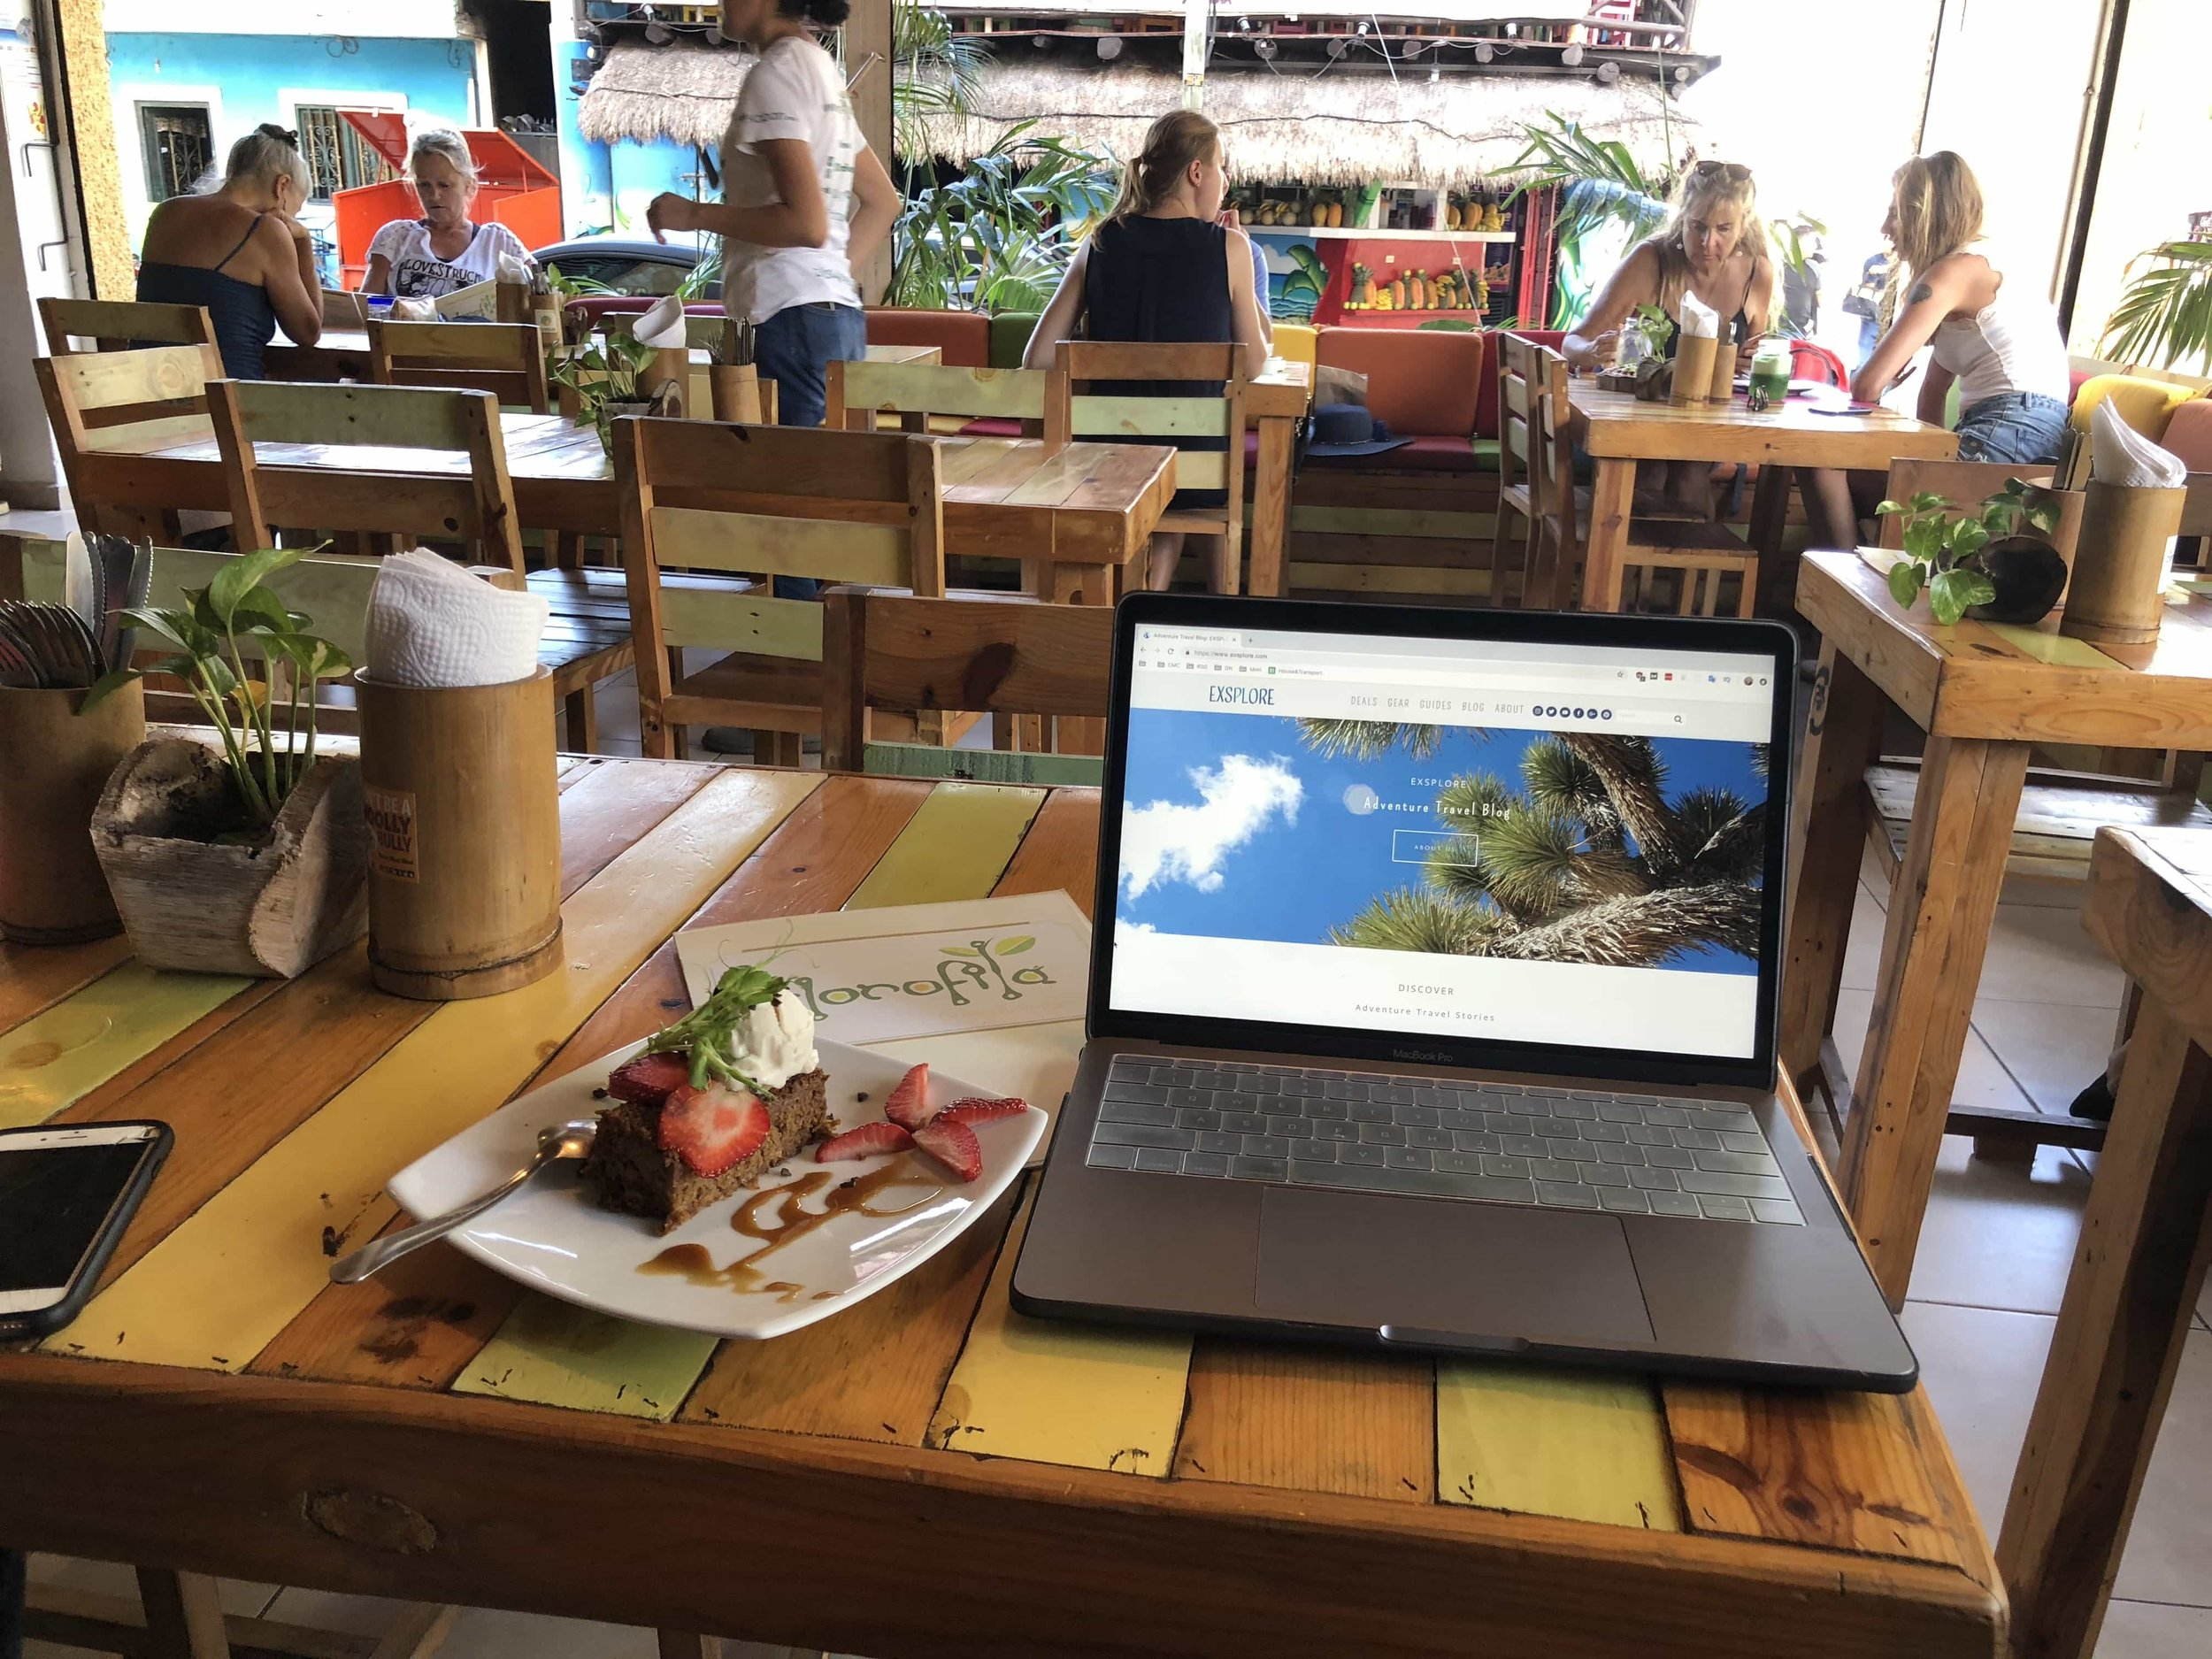 Being a digital nomad involves working from a lot of cafes